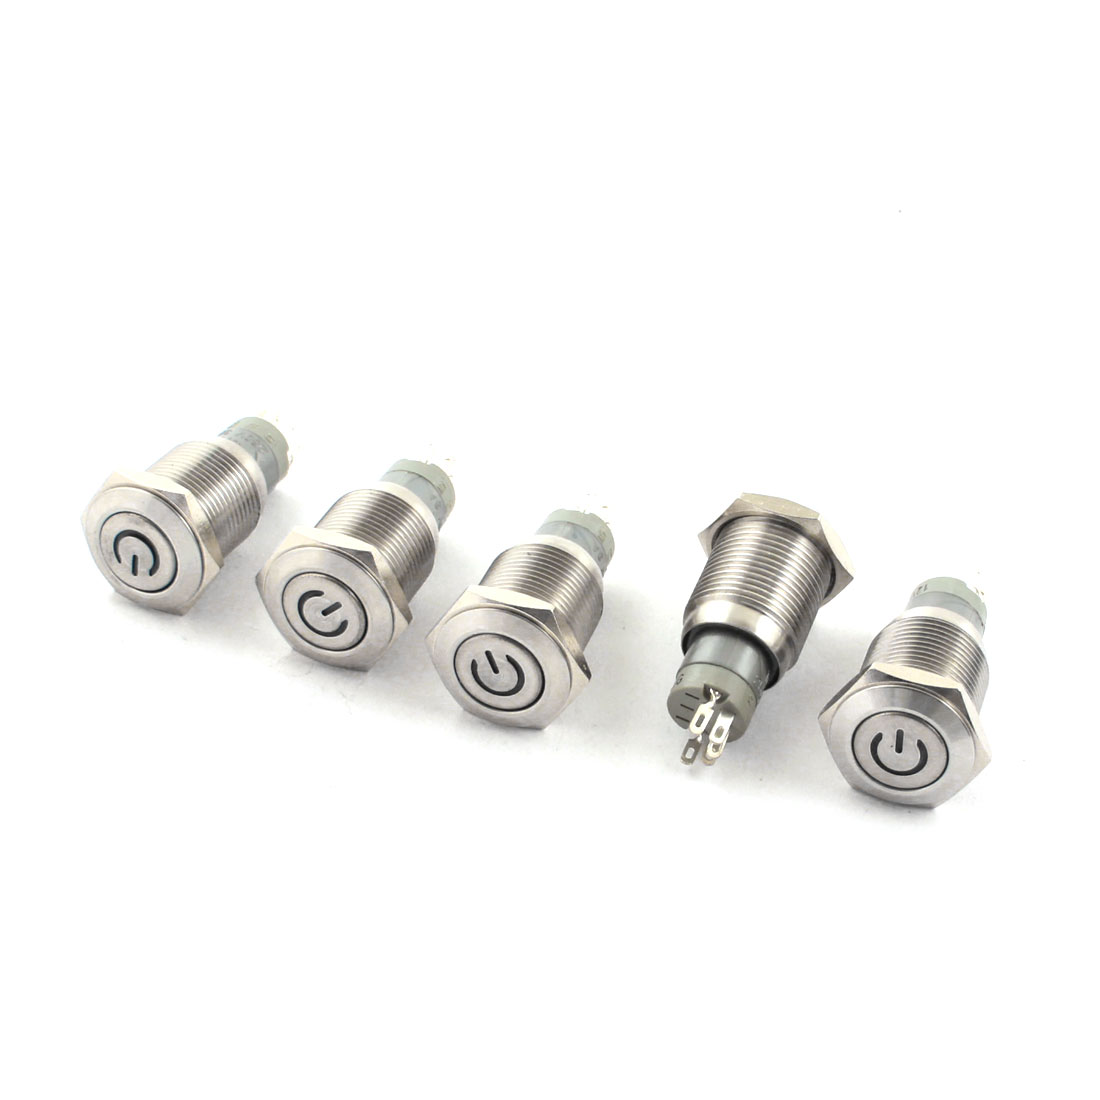 5Pcs DC 12V Green LED Angel Eye Indicator Light SPDT 1NO 1NC 5Pins 16mm Thread Locking Metal Push Button Switch